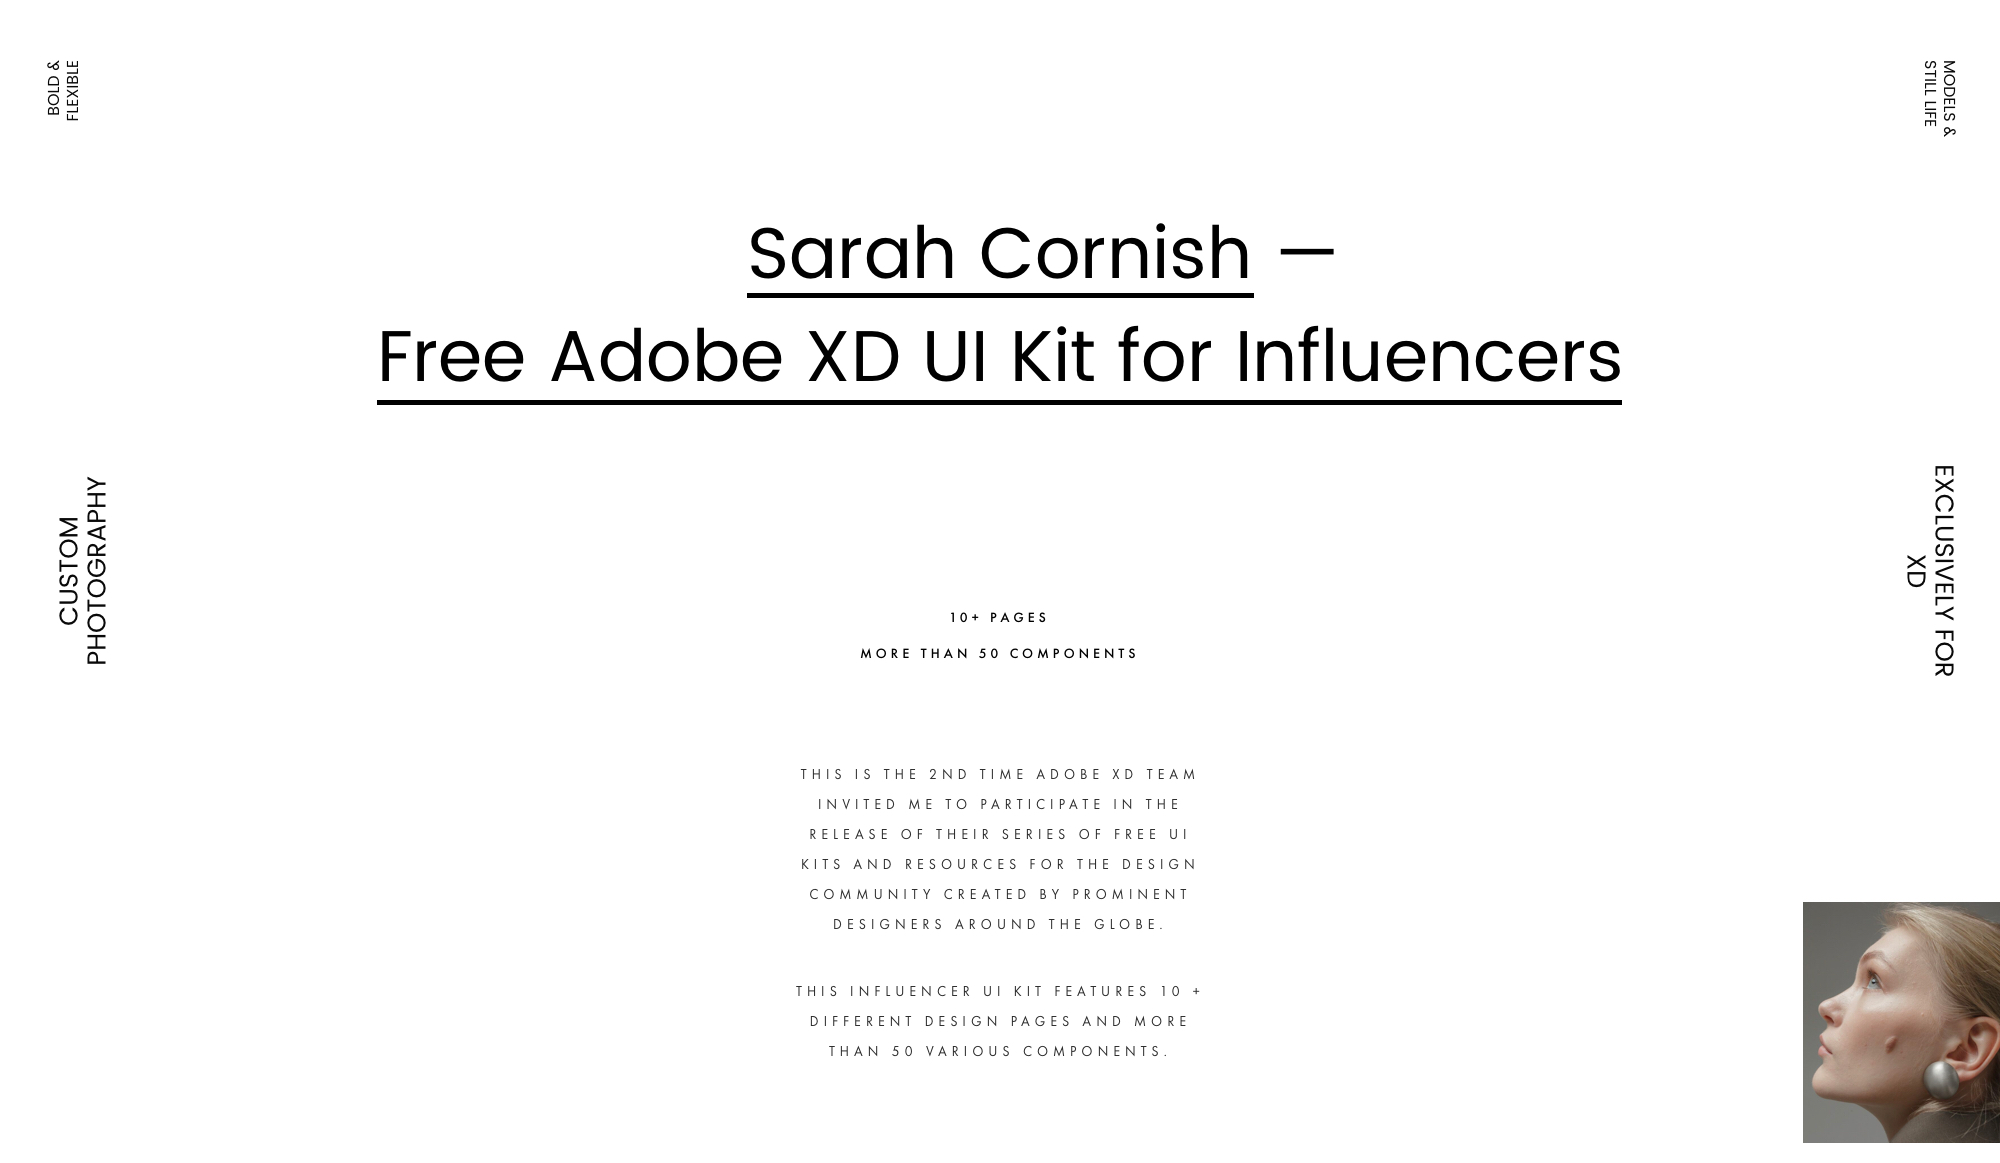 Fashion Influencer UI Kit for Adobe XD - The UI Kit itself is #MadeInAdobeXD and is available for free. It features a ton of goodies for you to use in your next design projects! Don't miss out!